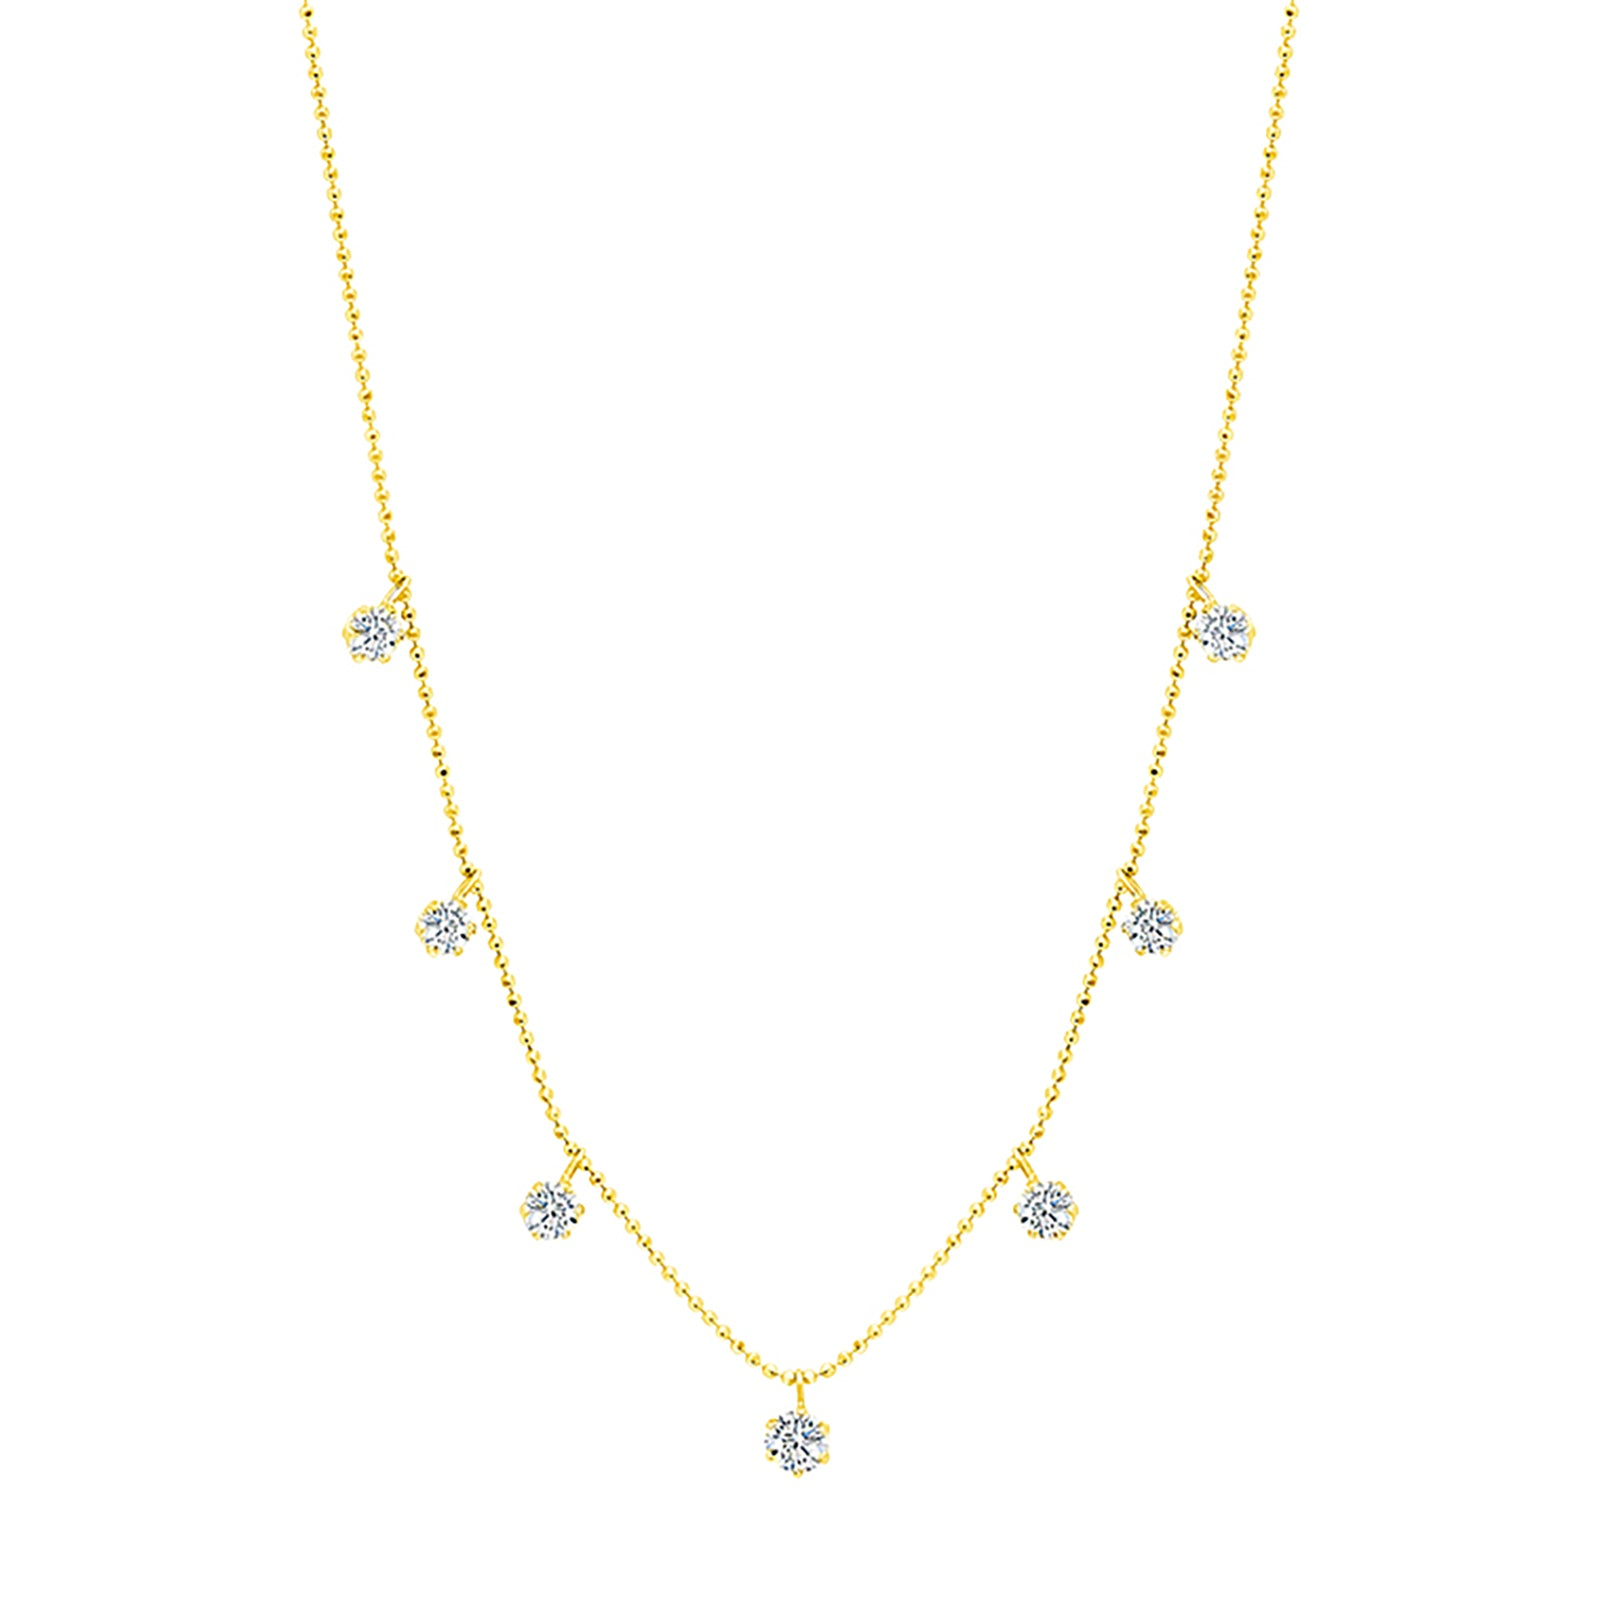 Graziela Medium Floating Diamond Necklace - Yellow Gold - Necklaces - Broken English Jewelry